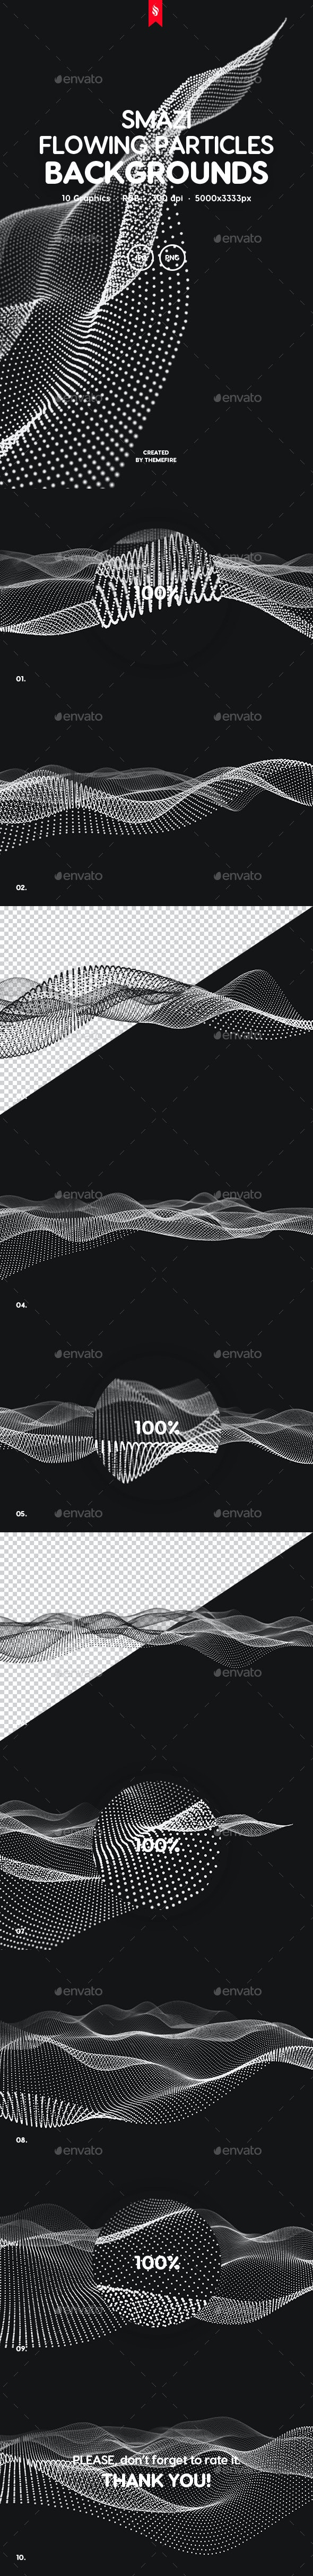 Smazi - Flowing Particles Futuristic and Technology Background Set - Tech / Futuristic Backgrounds